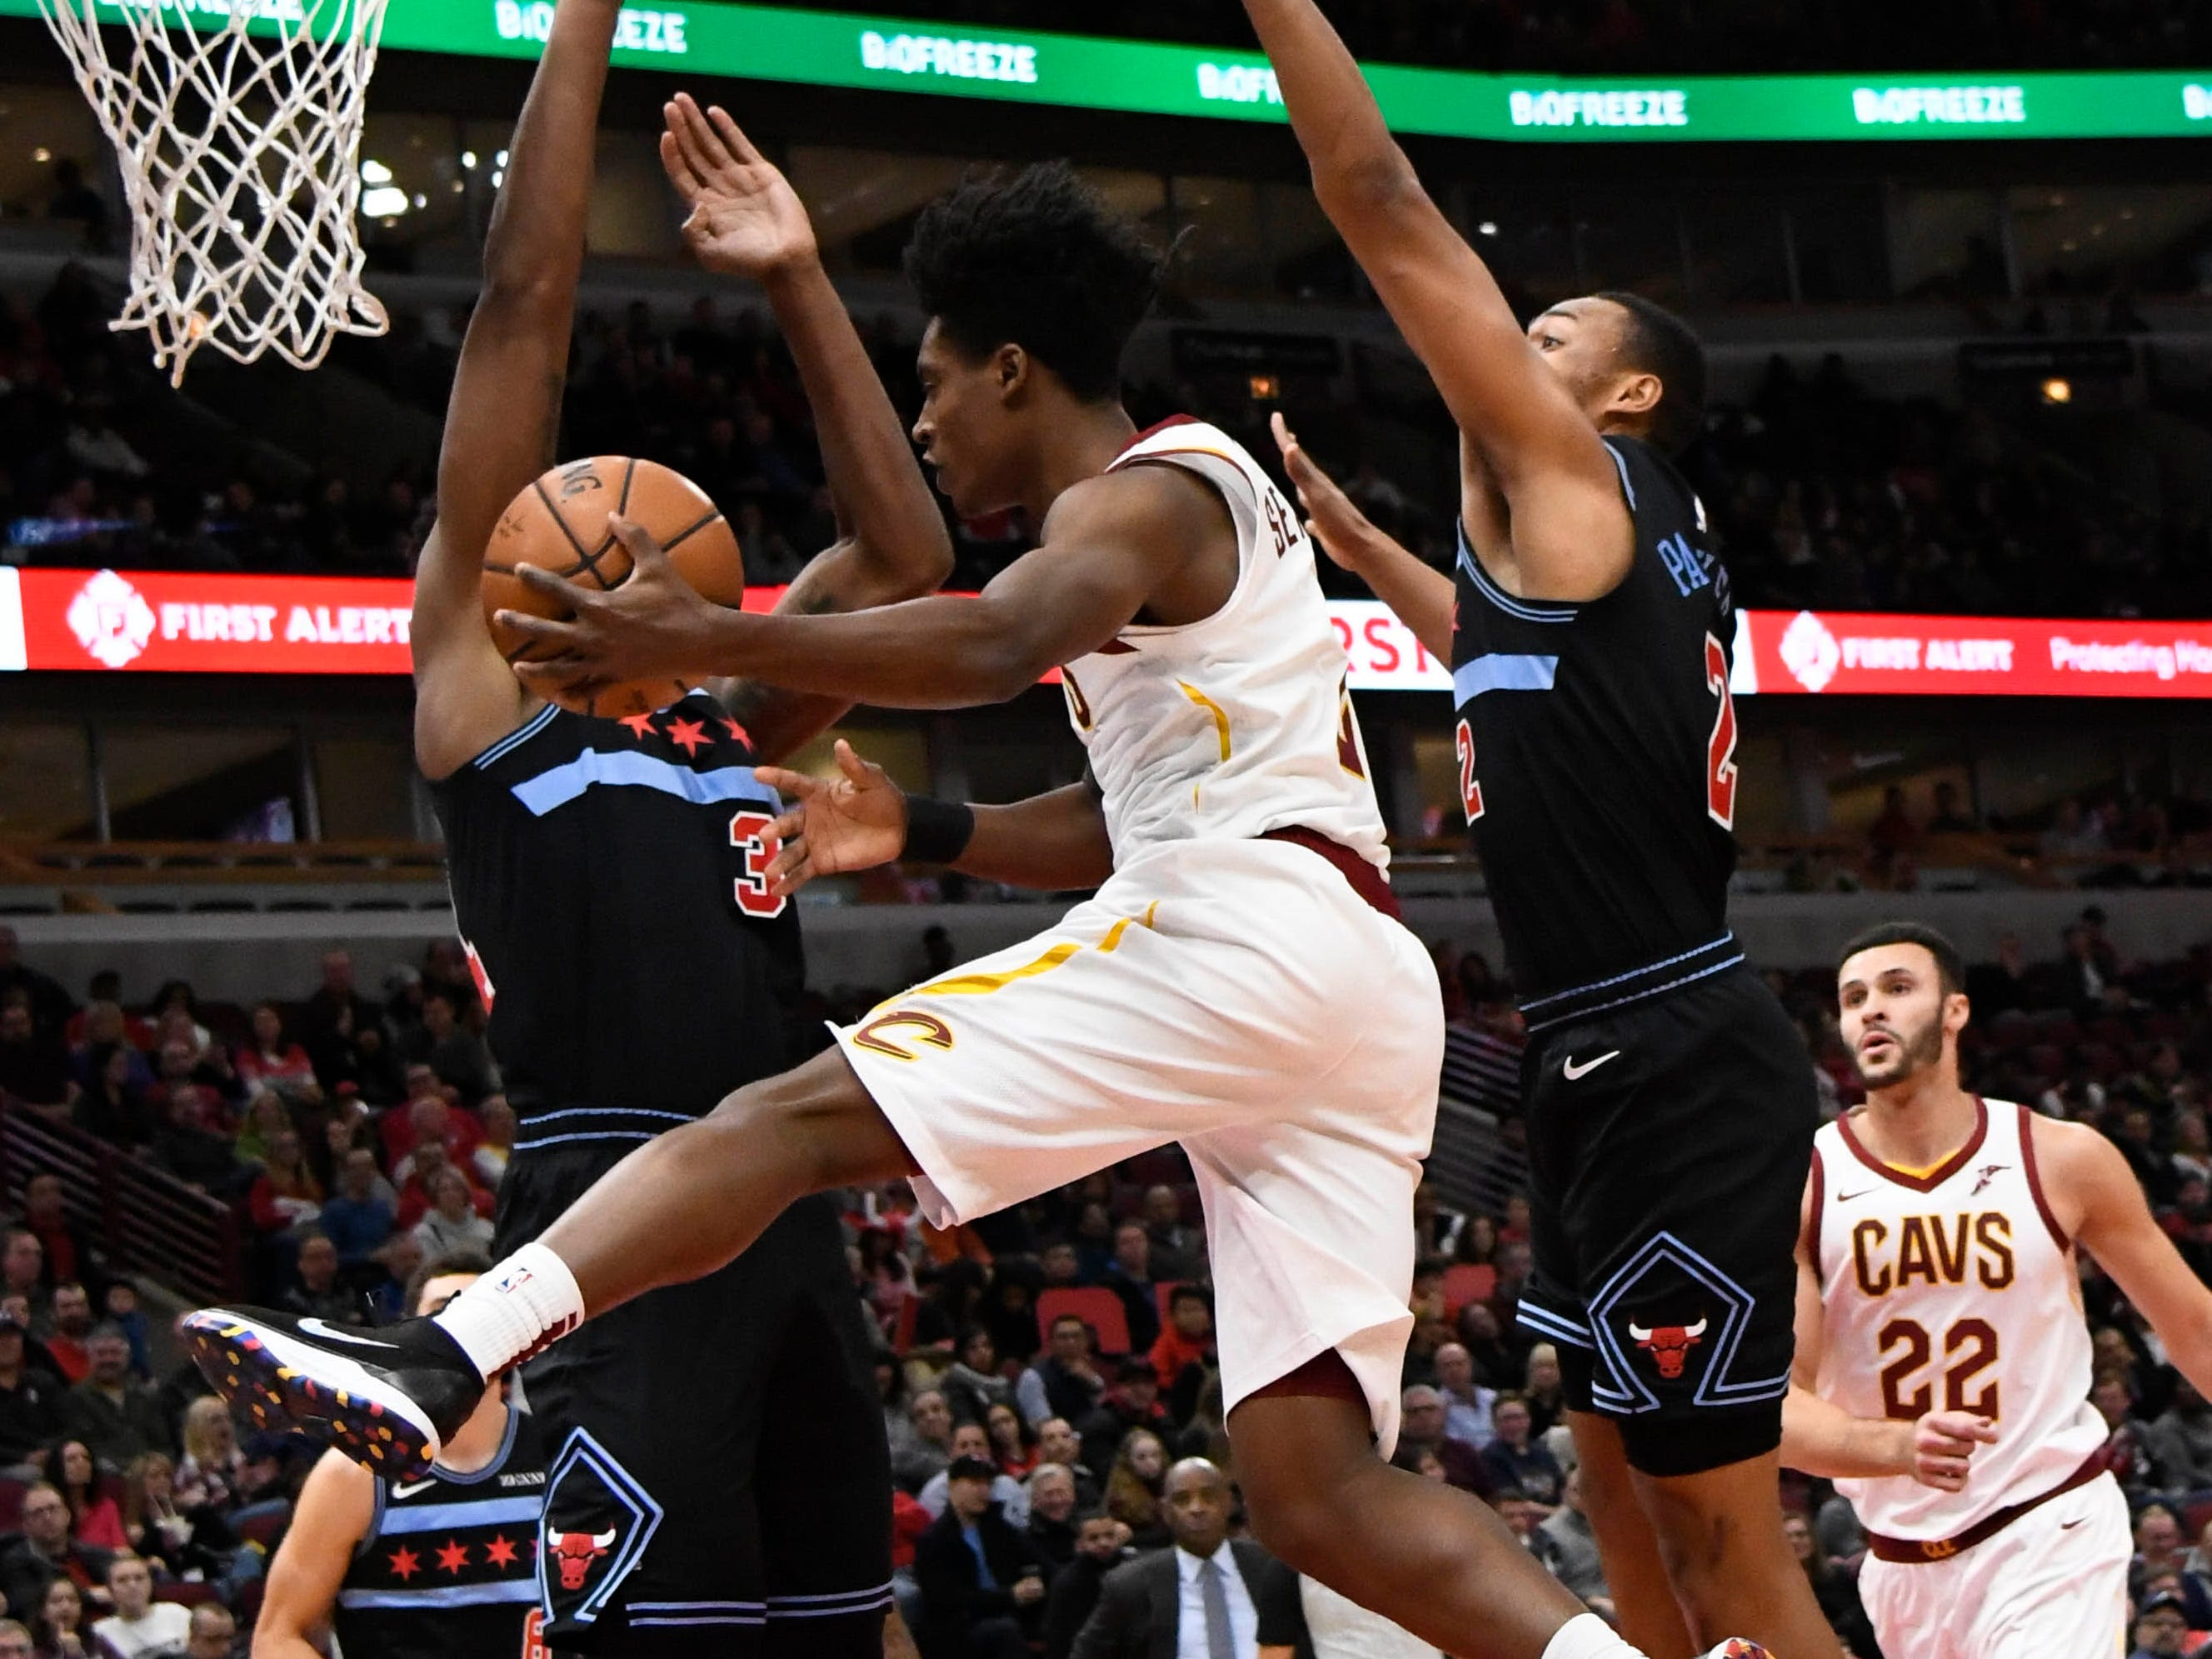 Nov. 10: Cavaliers guard Collin Sexton, center, tries to make a leaping pass around Bulls defenders Wendell Carter Jr., left, and Jabari Parker during the first half in Chicago.